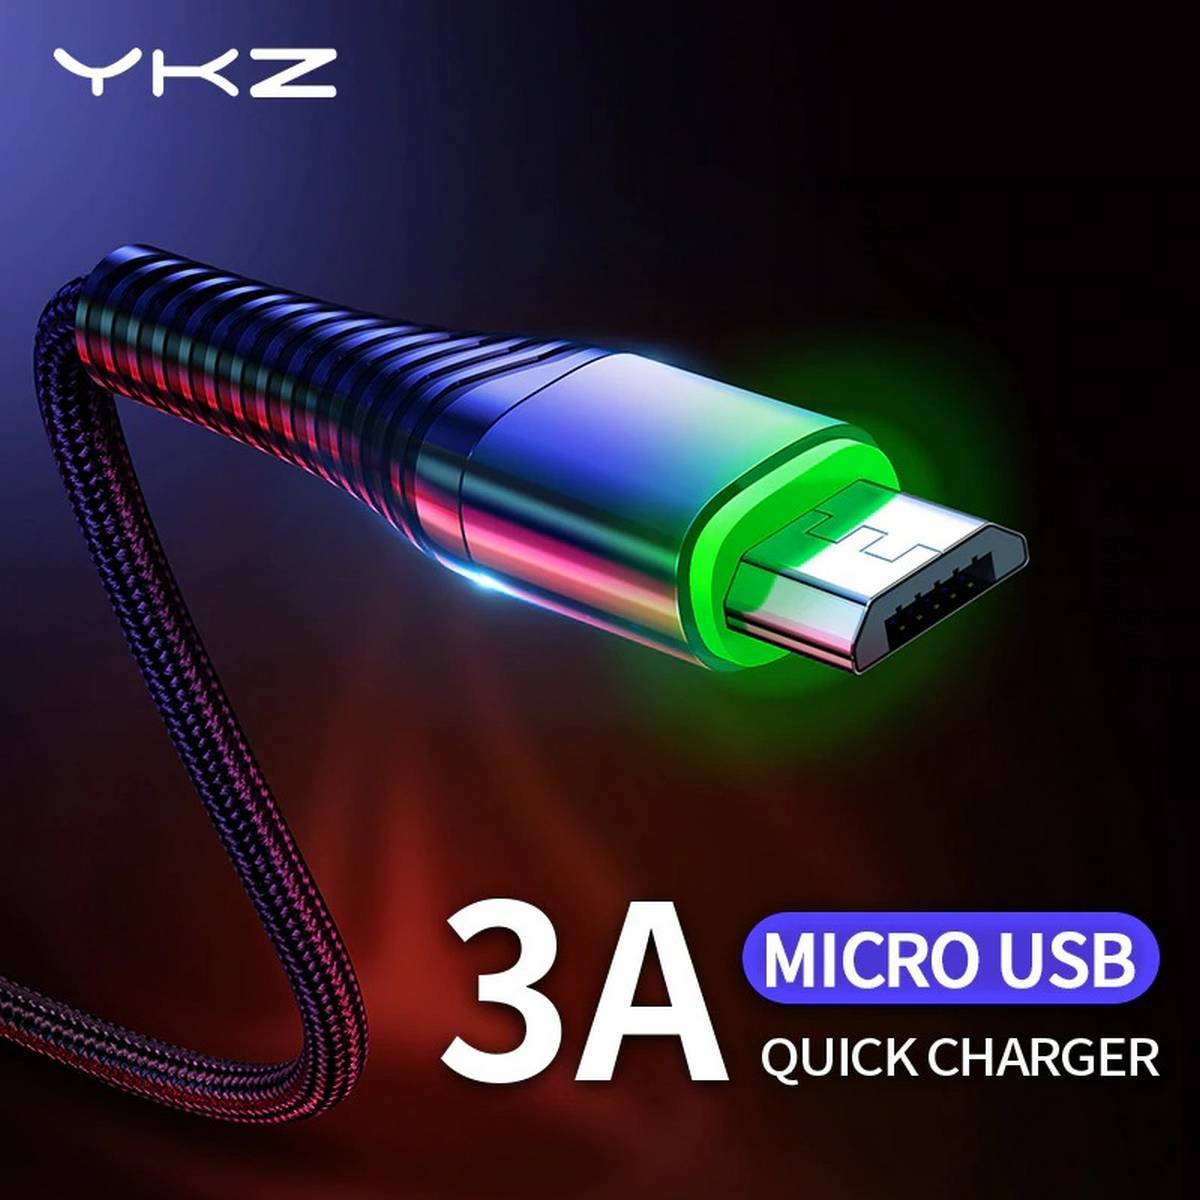 YKZ QC 3.0 1 Meter LED 3A Braided Micro USB Fast Charging + Data Cable / Sync Cable For Samsung / HTC / Infinix / Xiaomi / Oppo / Huawei / Android Phones